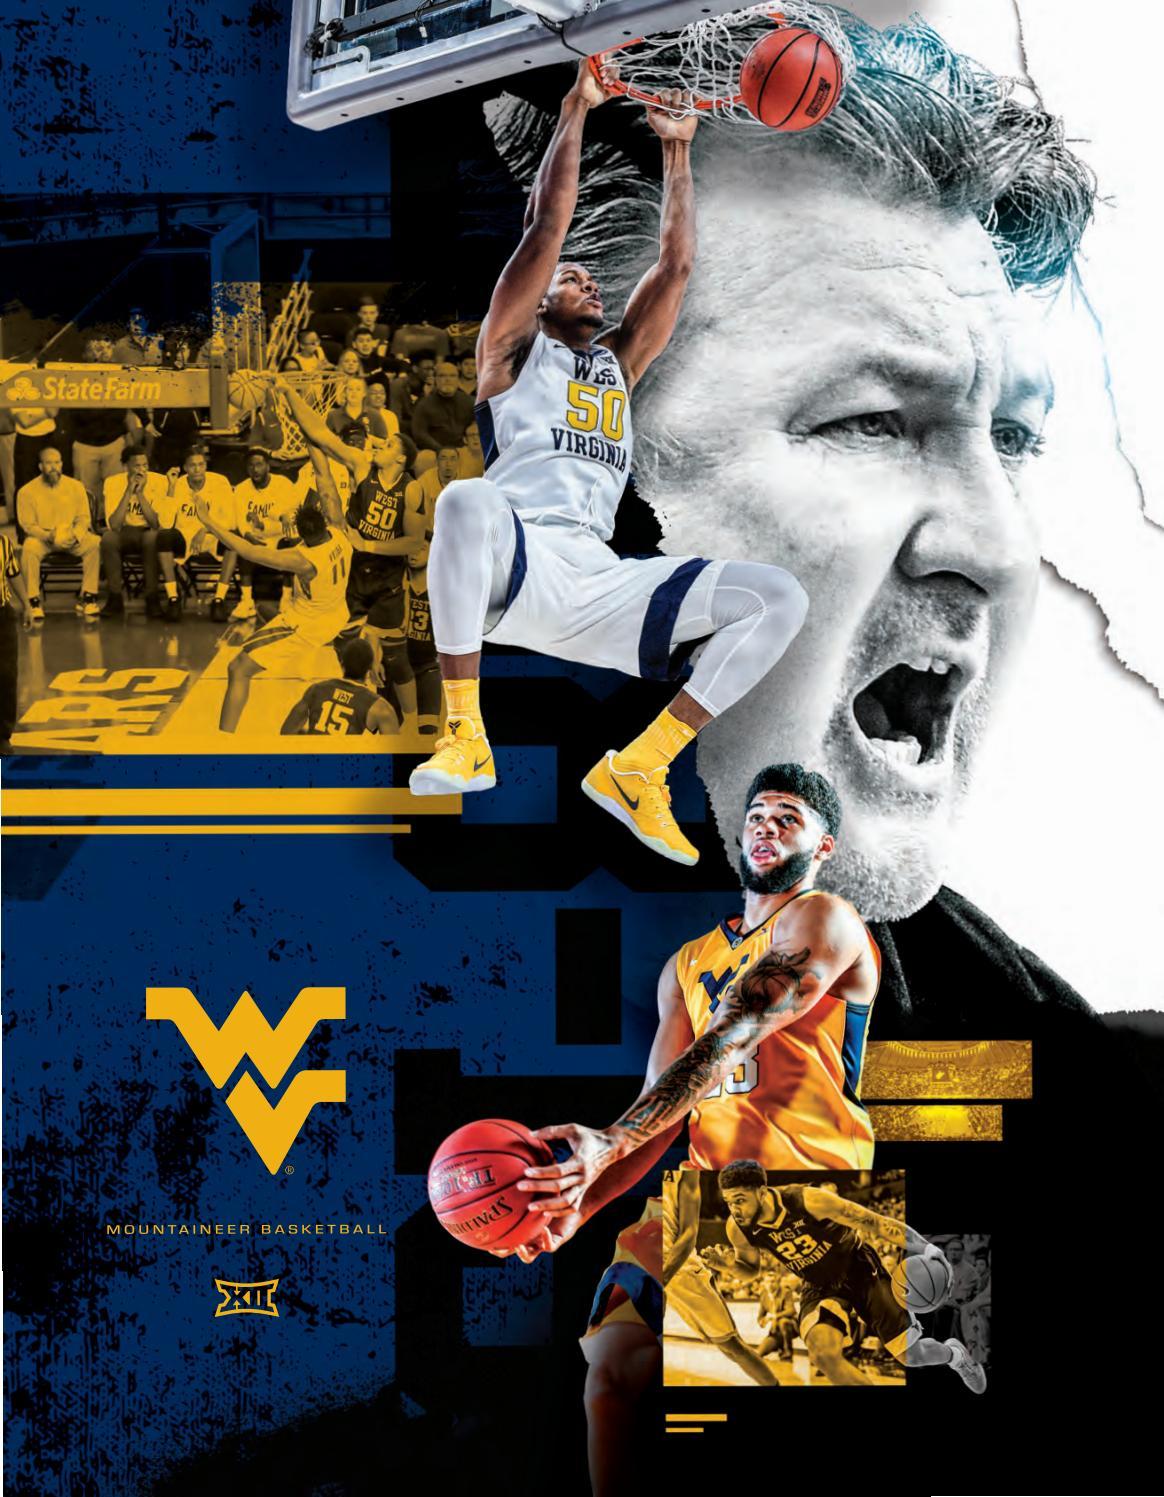 newest e2623 8f38a 2018-19 WVU Men s Basketball Guide by Joe Swan - issuu